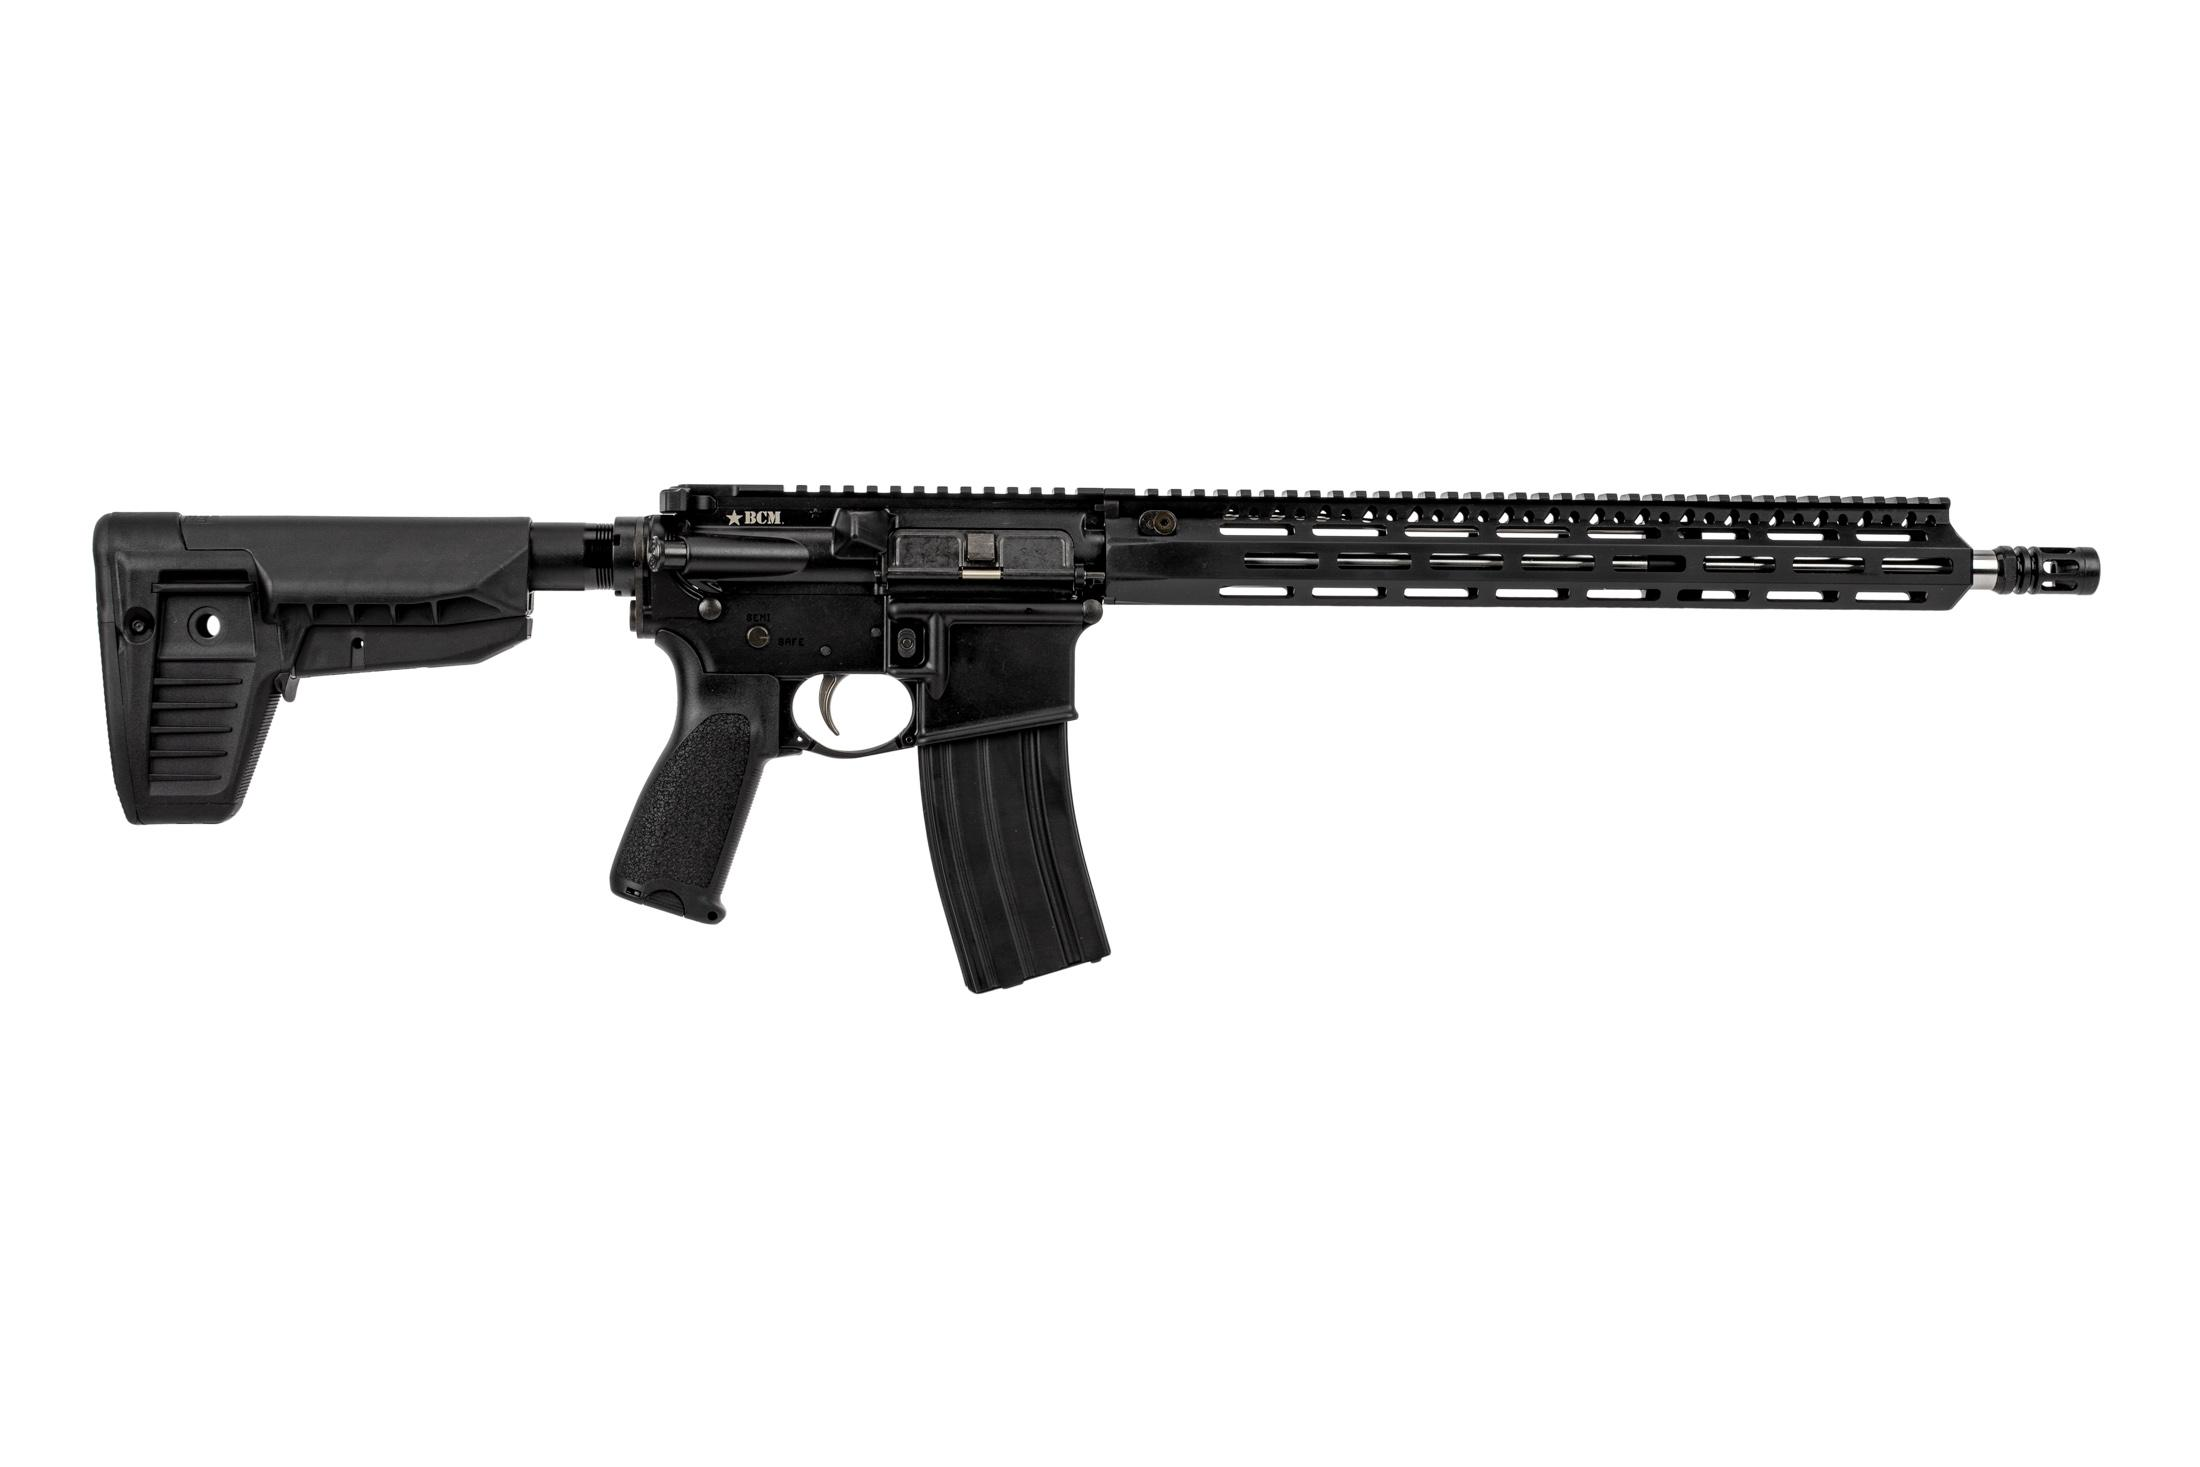 Bravo Company USA RECCE-16 precision rifle features the MCMR free float M-LOK handguard